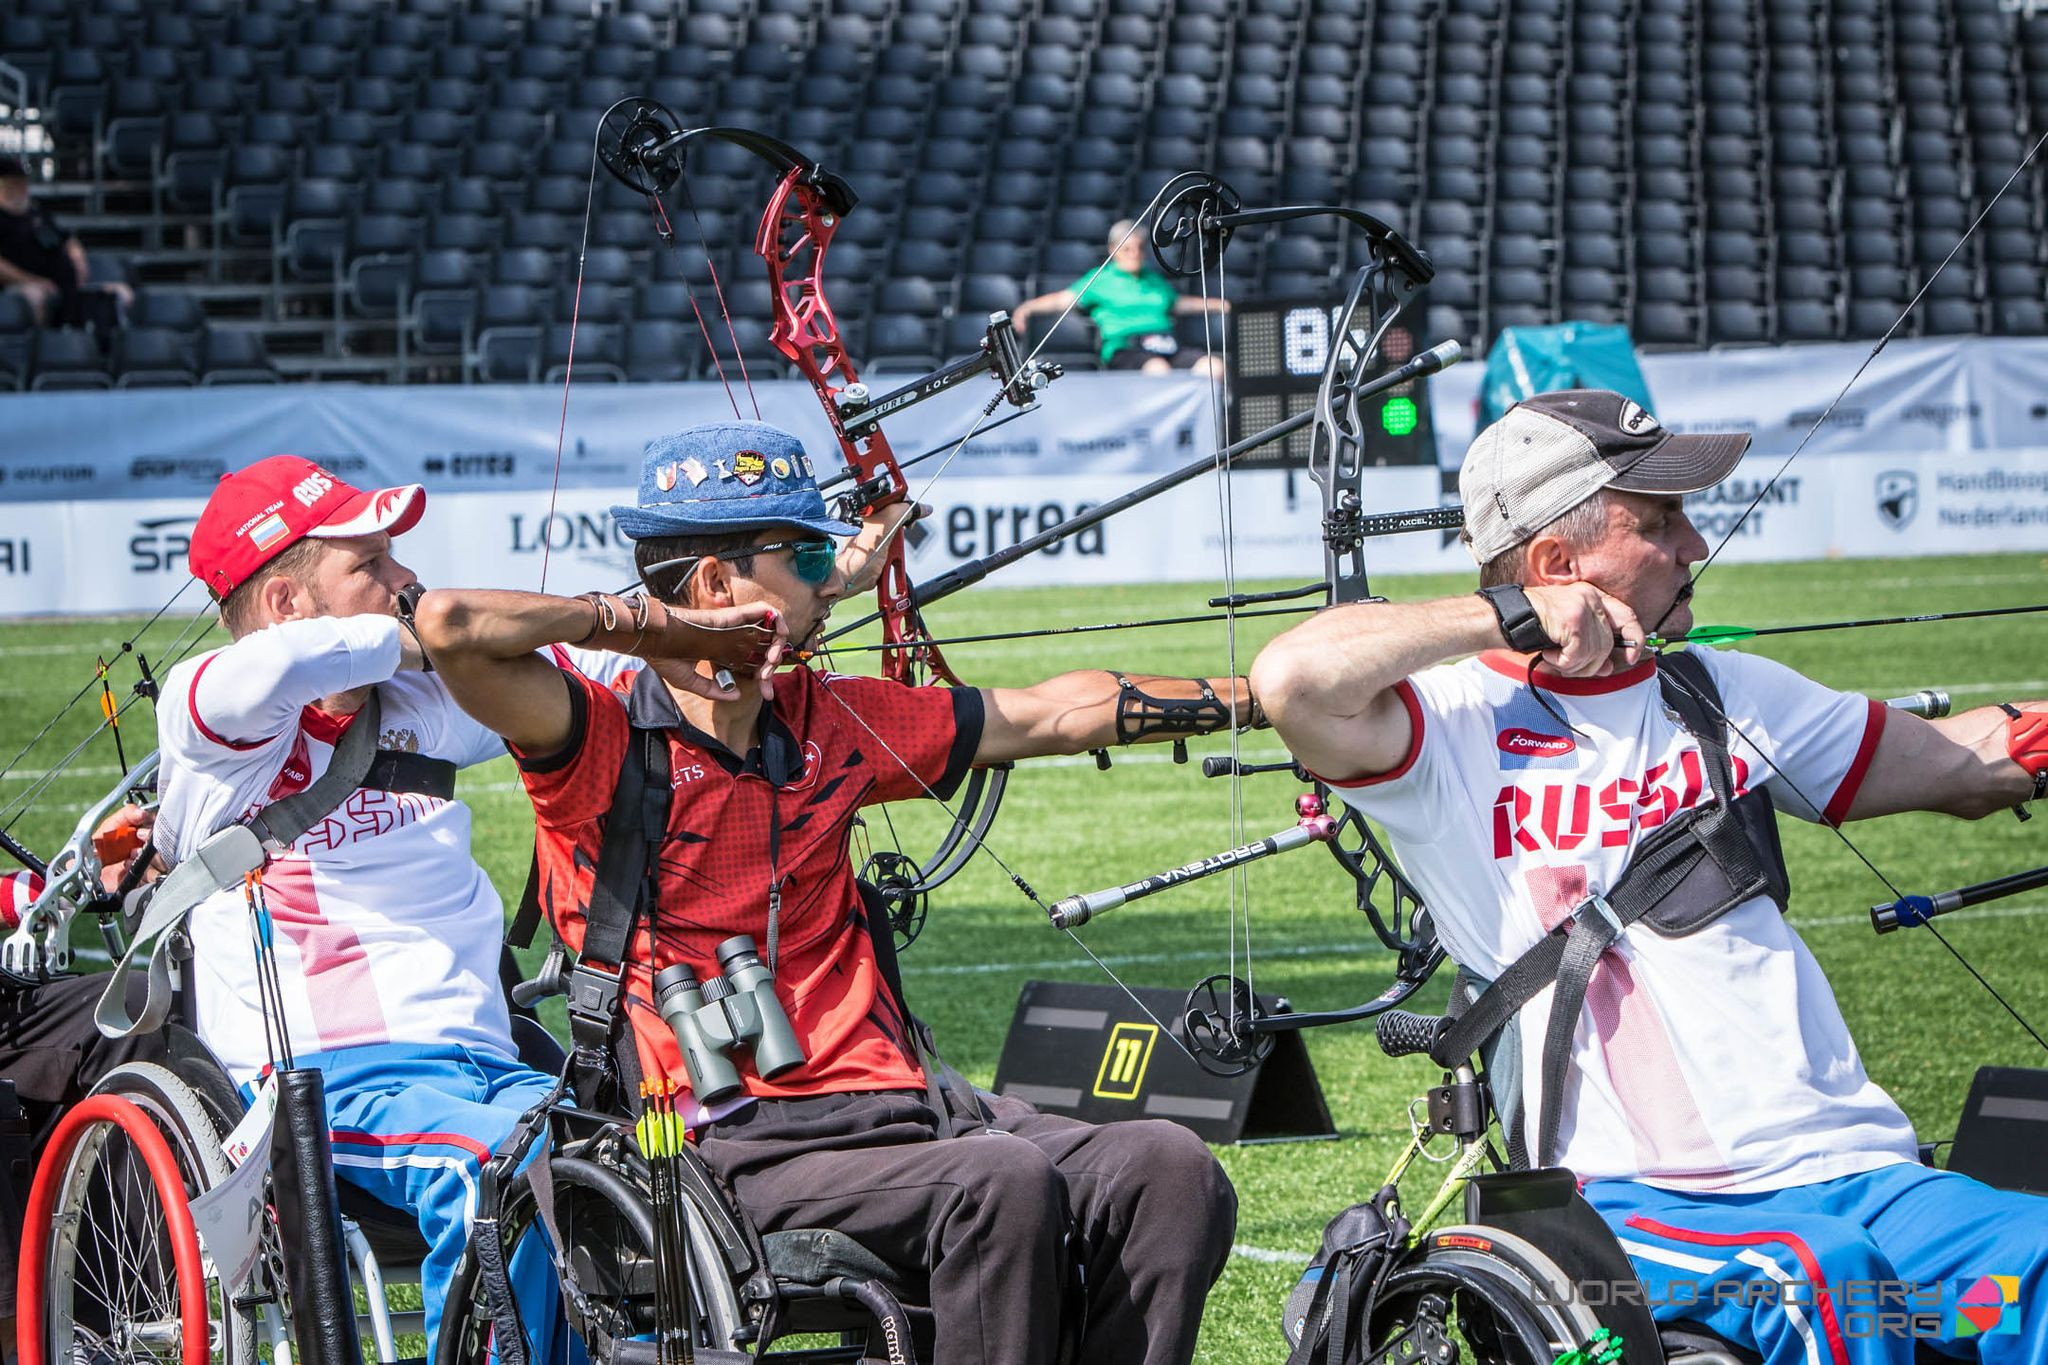 Turkey's Bahattin Hekimoğlu, centtre, topped the individual rankings and helped his nation break the W1 men's team world record with a score of 1969 points at the World Archery Para Championships in The Netherlands today ©World Archery